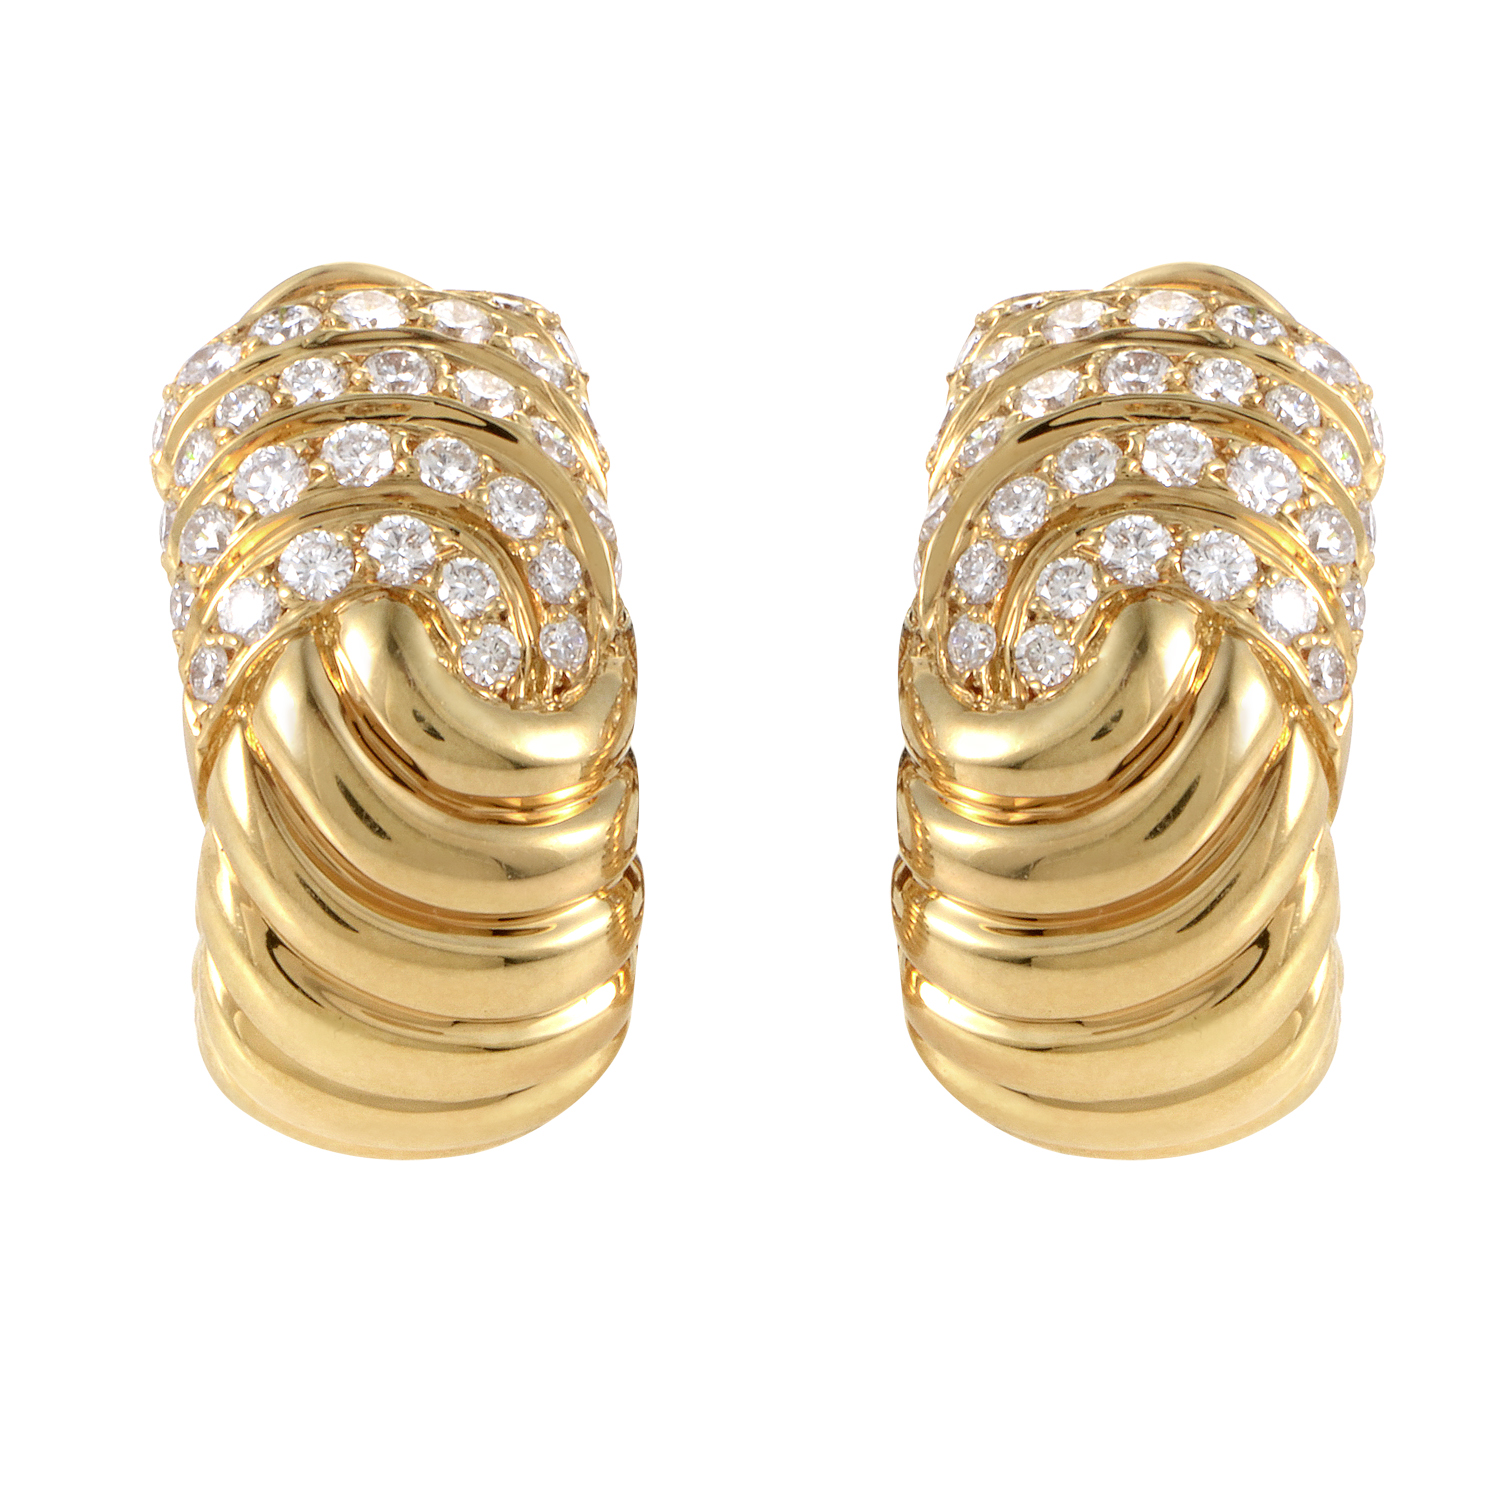 Boucheron 18K Yellow Gold Diamond Huggie Earrings